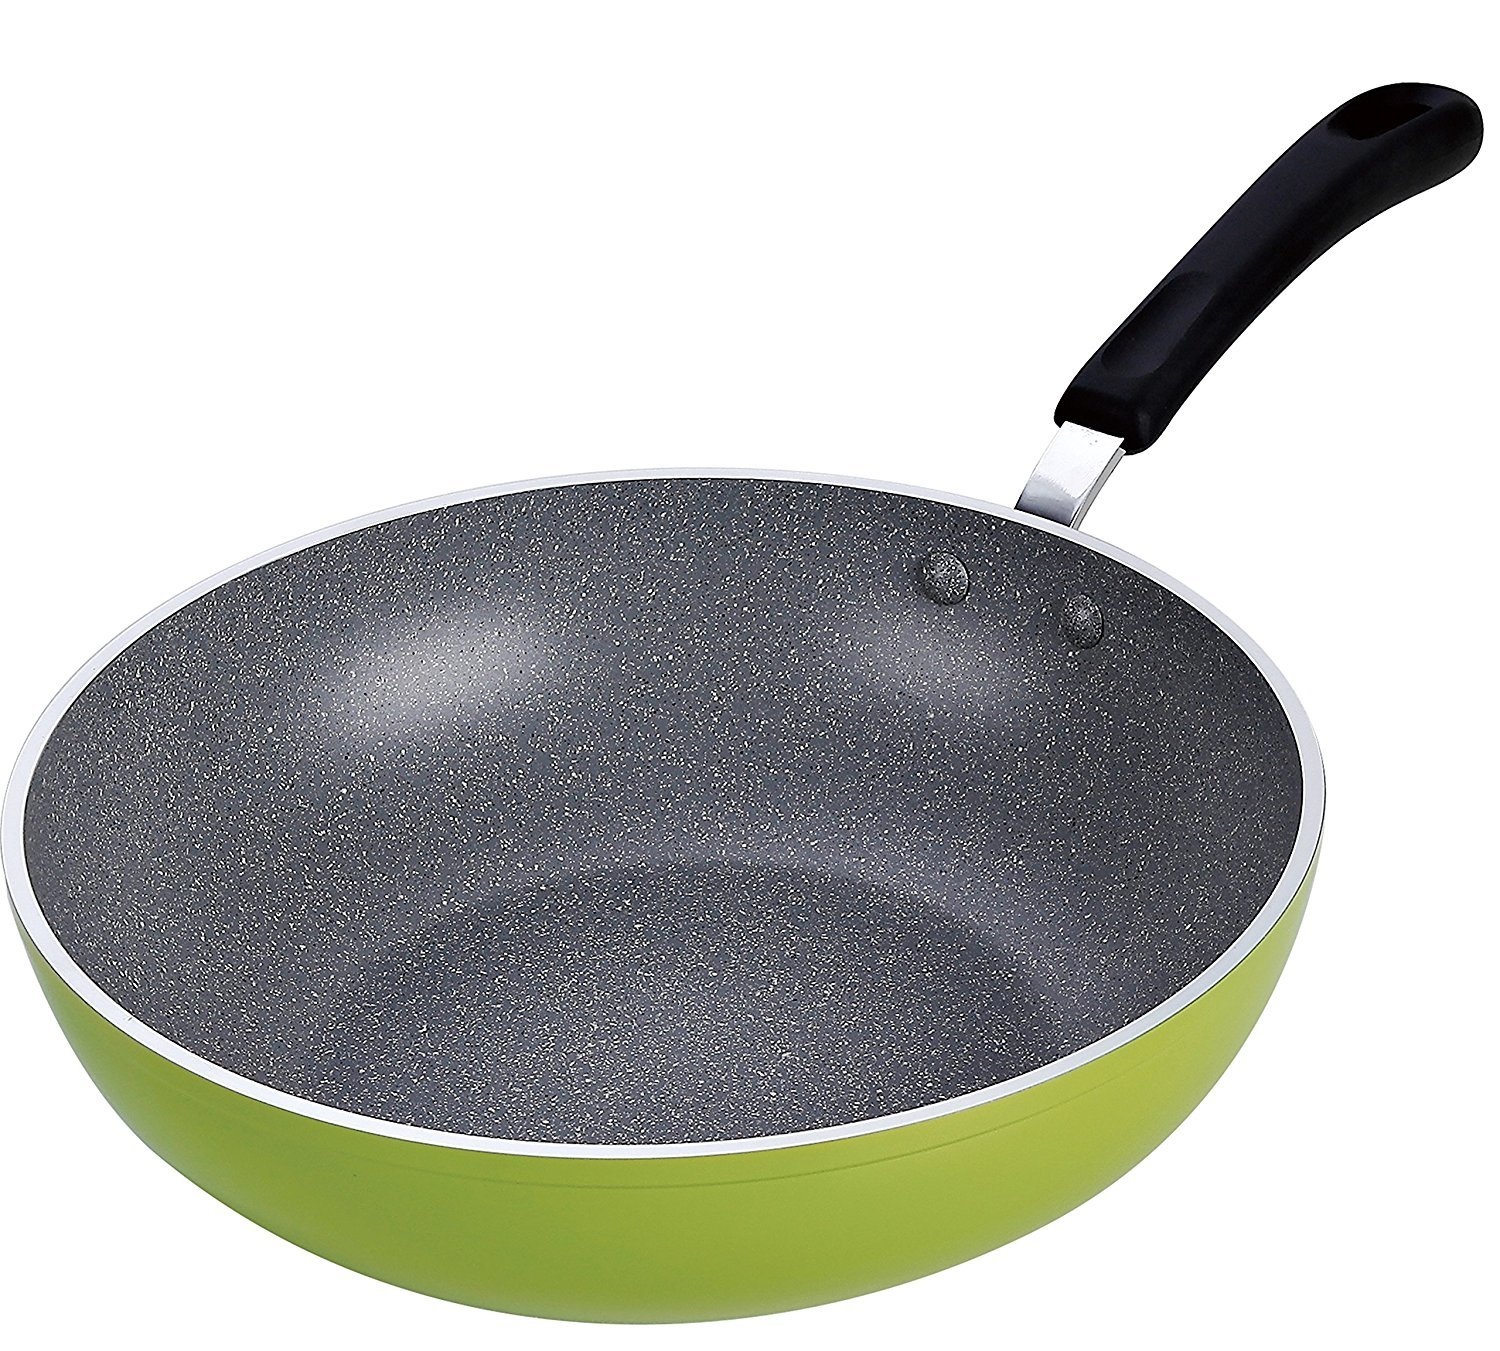 Cook N Home 12-Inch Stir Fry Pan Wok Pan 30cm with Non-Stick Coating Induction Compatible Bottom, Large, Green (3-Pack)